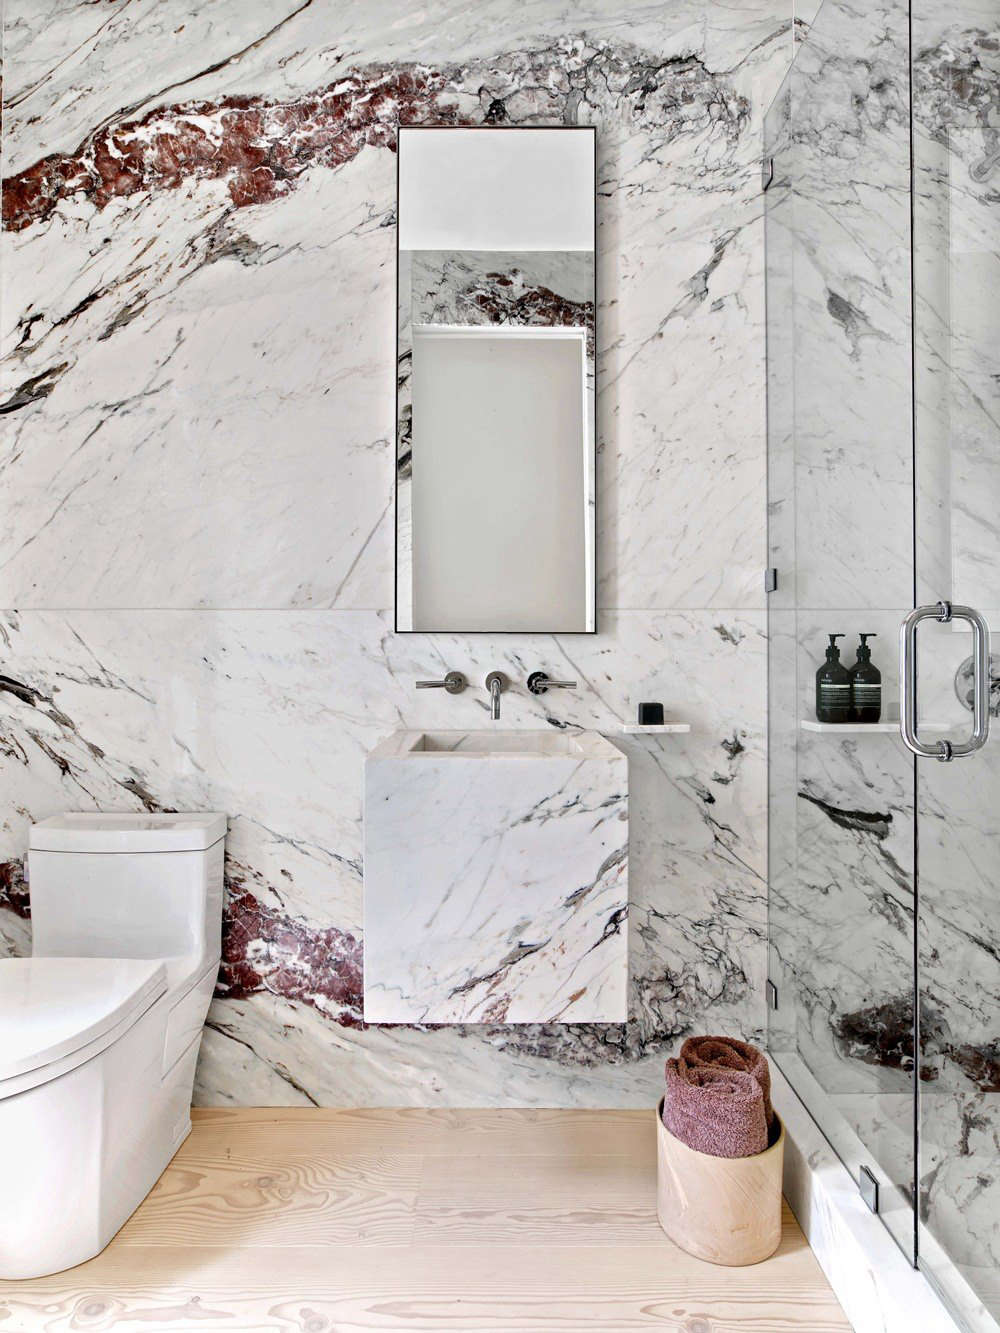 Best Professional Bath A Dramatic Marble Powder Room By Ccs Architecture Remodelista